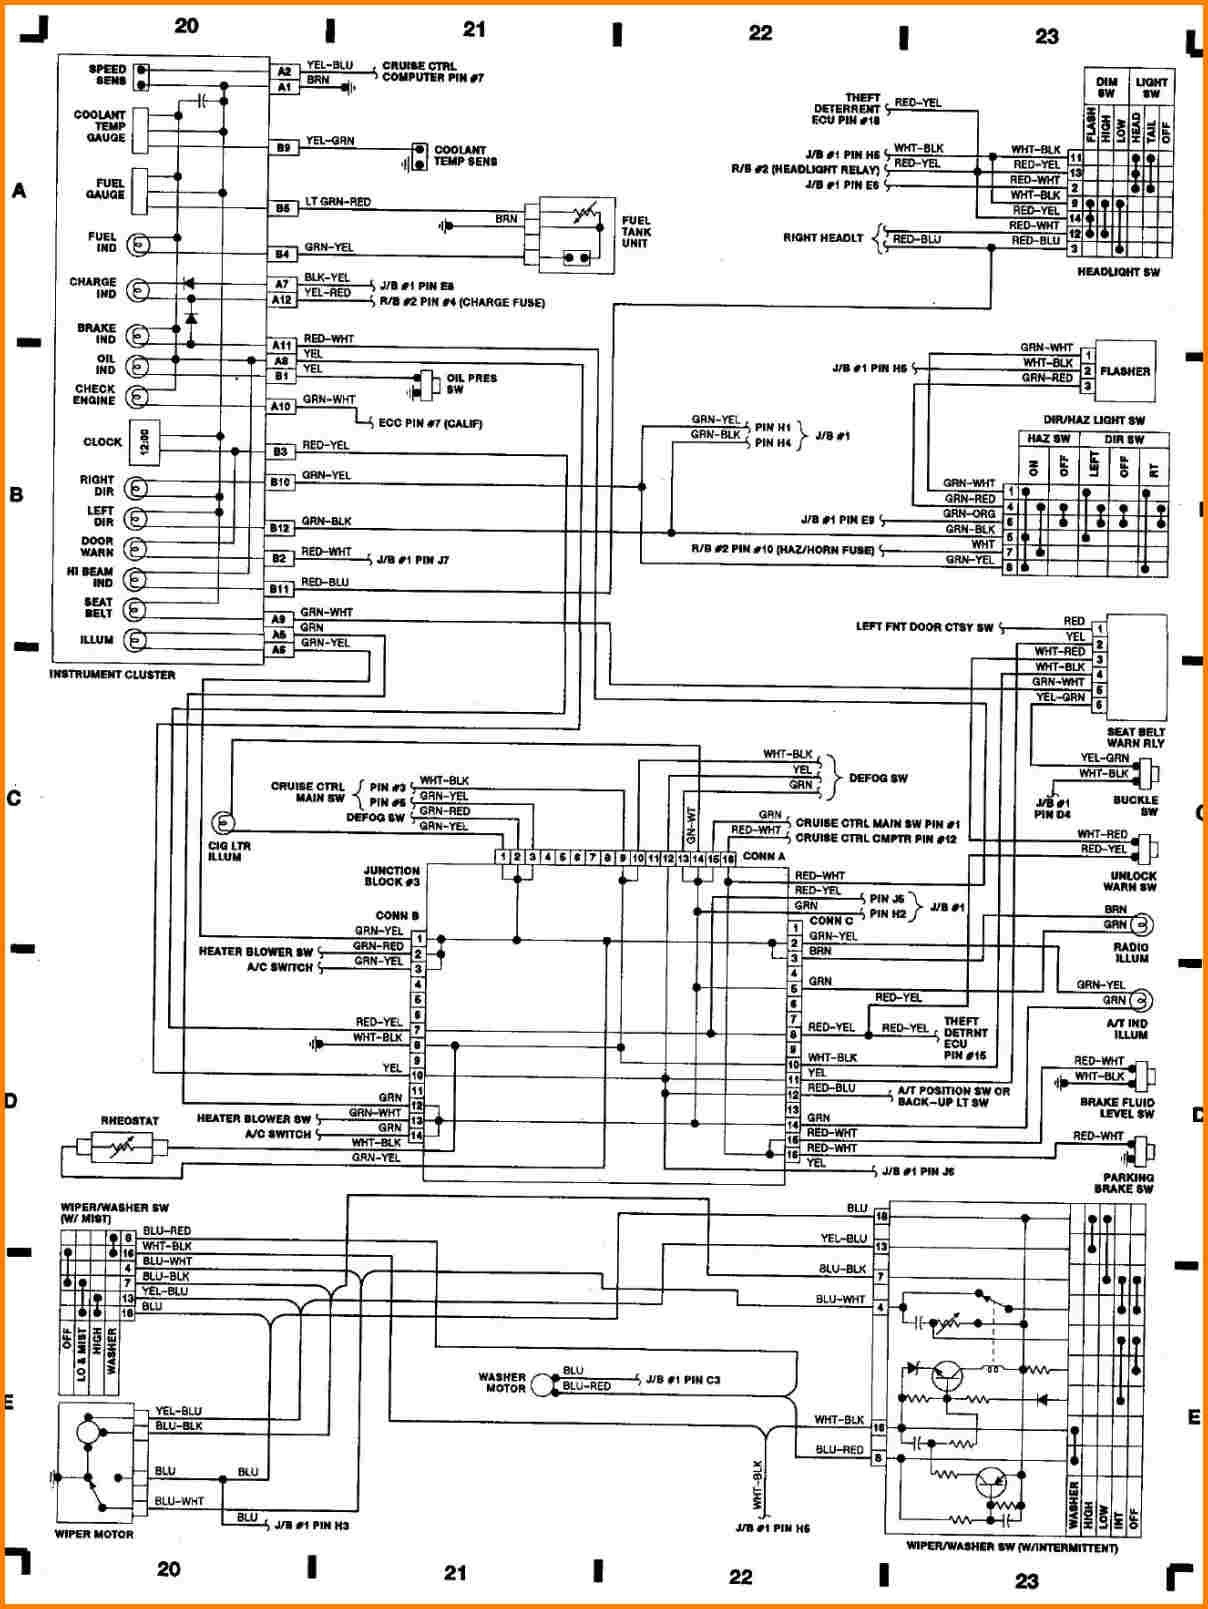 [DIAGRAM_1CA]  04 Tundra Trailer Wiring Diagram | Wiring Diagram | 2007 Toyota Tundra Trailer Wiring Diagram Schematic |  | Wiring Diagram - Autoscout24